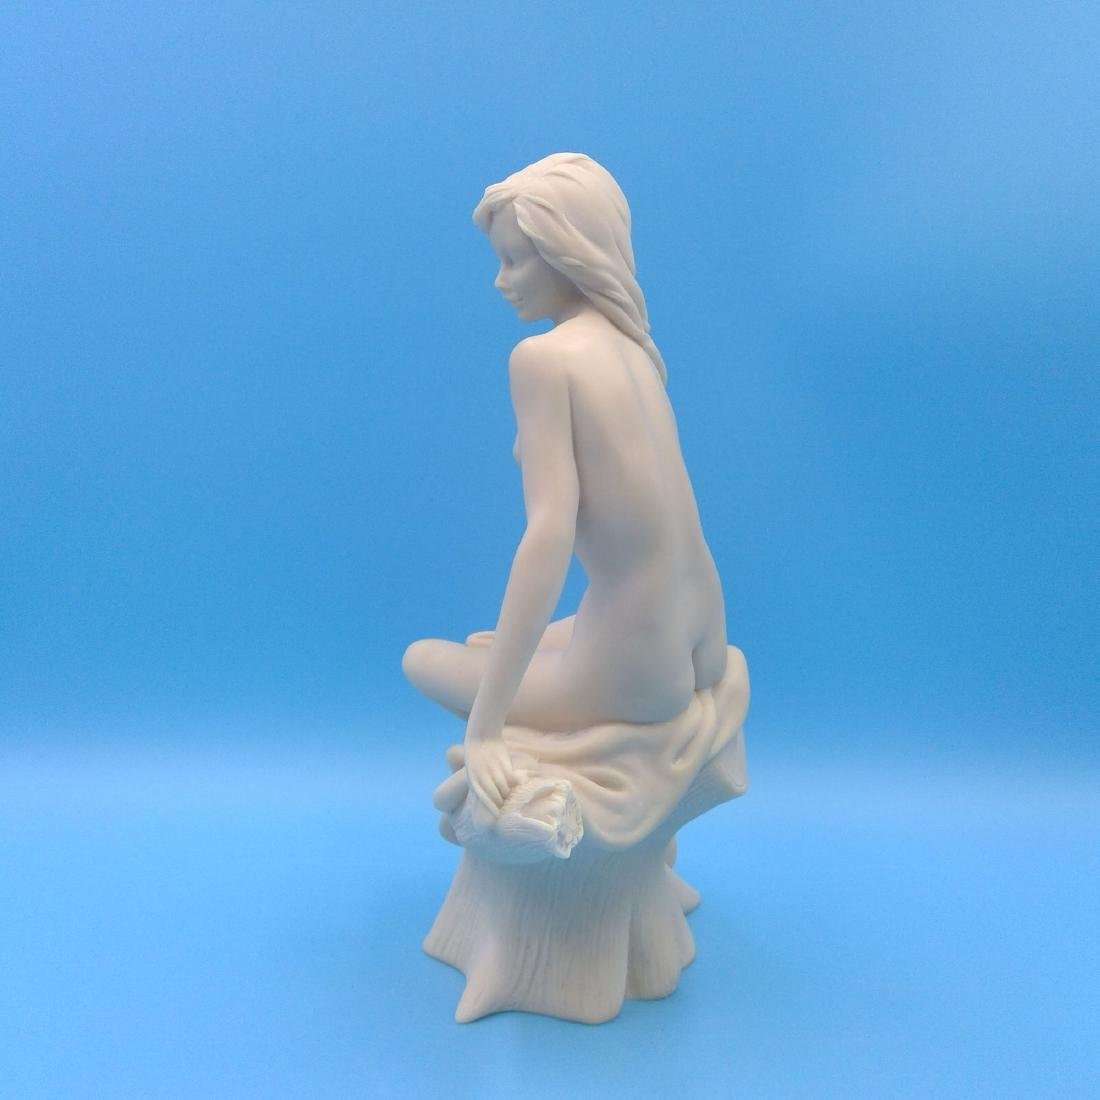 RESIN SCULPTURE OF A NUDE SEATED YOUNG WOMAN - 2